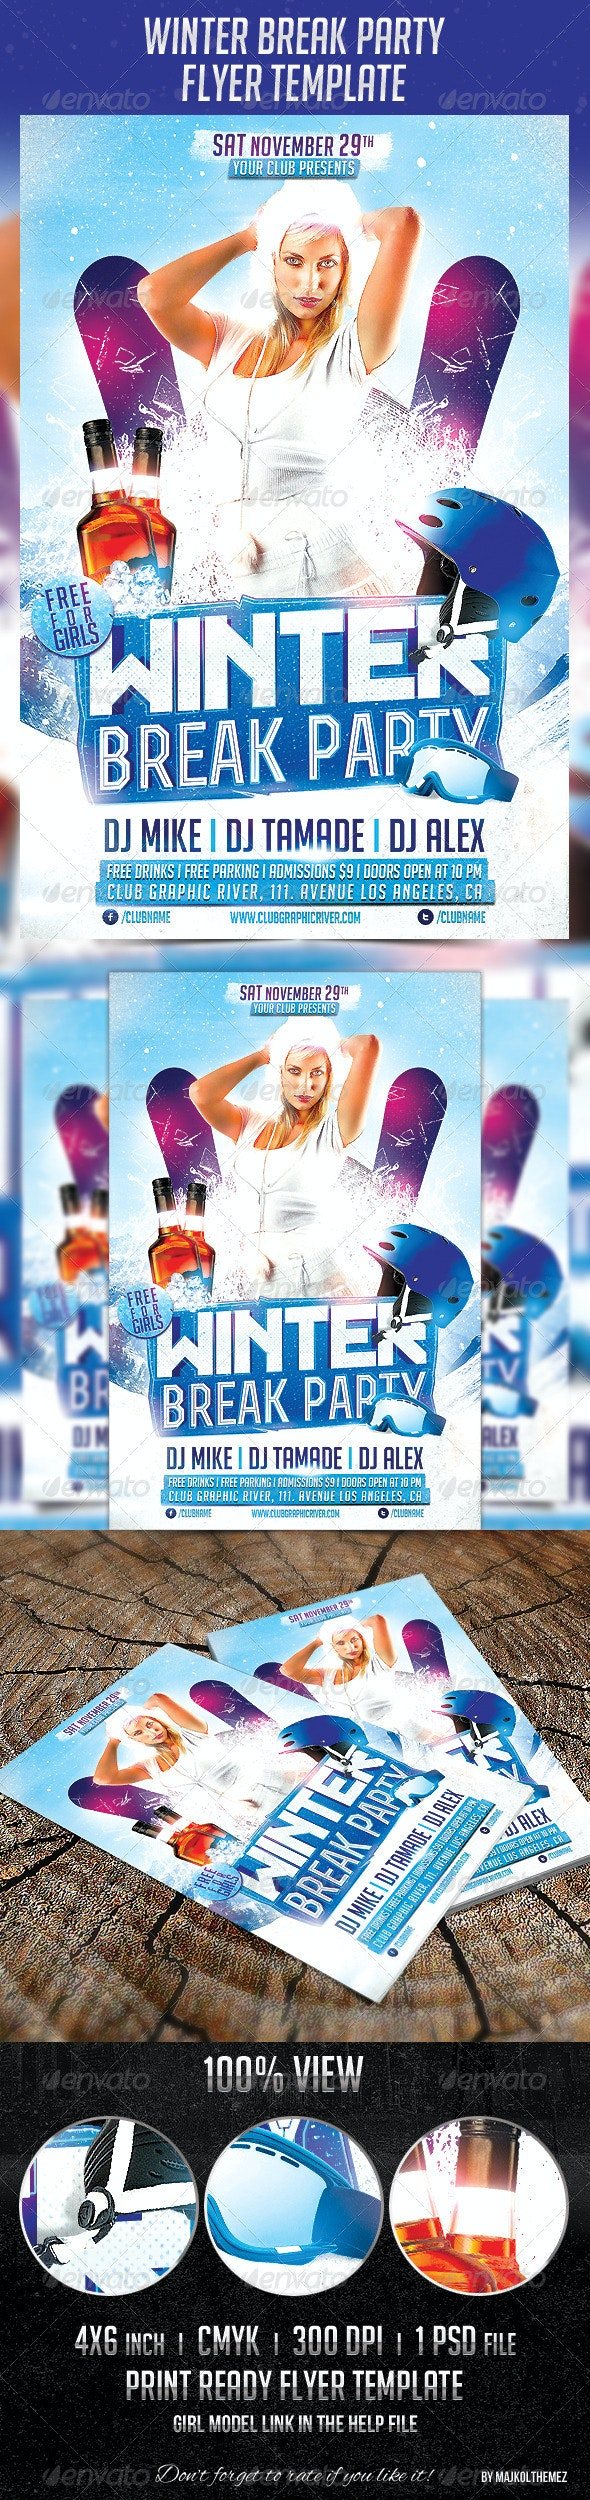 Winter Break Party Flyer Template - Holidays Events